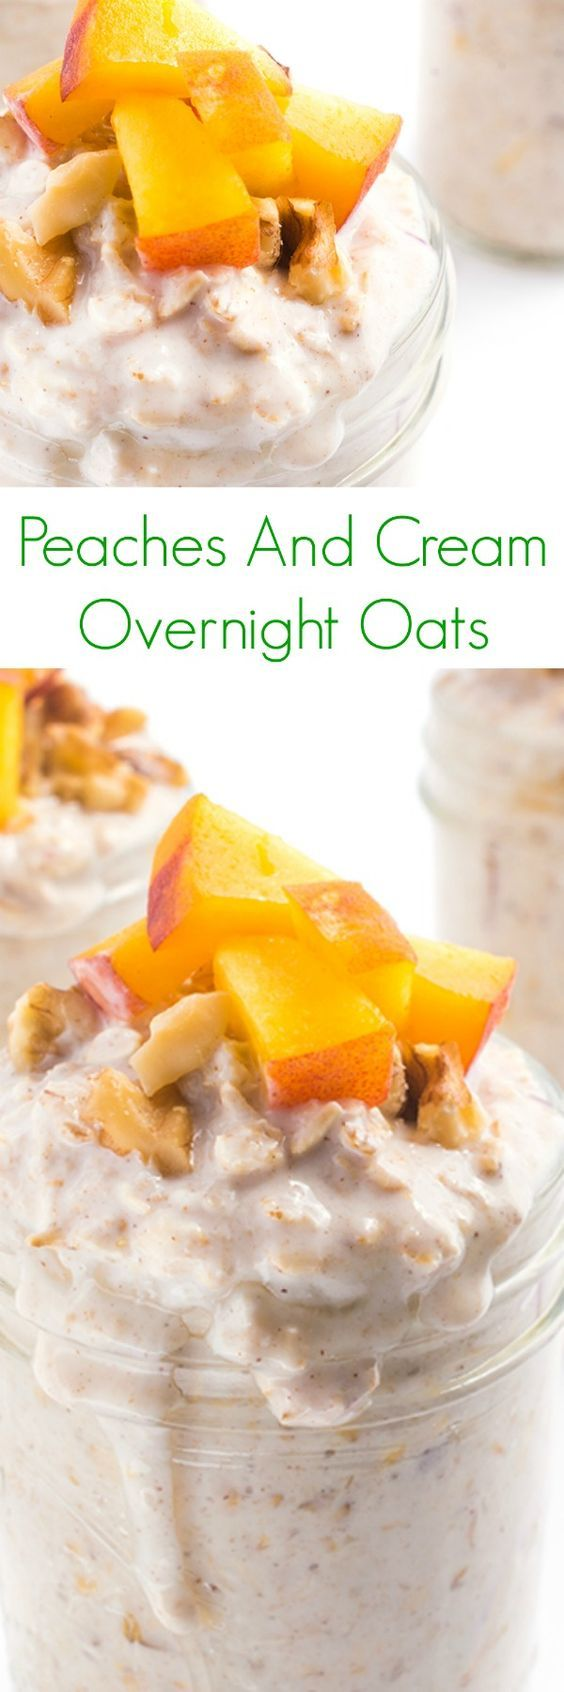 Peaches And Cream Overnight Oats - An easy, portable, make-ahead breakfast recipe, your family will love these thick and creamy Peaches and Cream Overnight Refrigerator Oats.